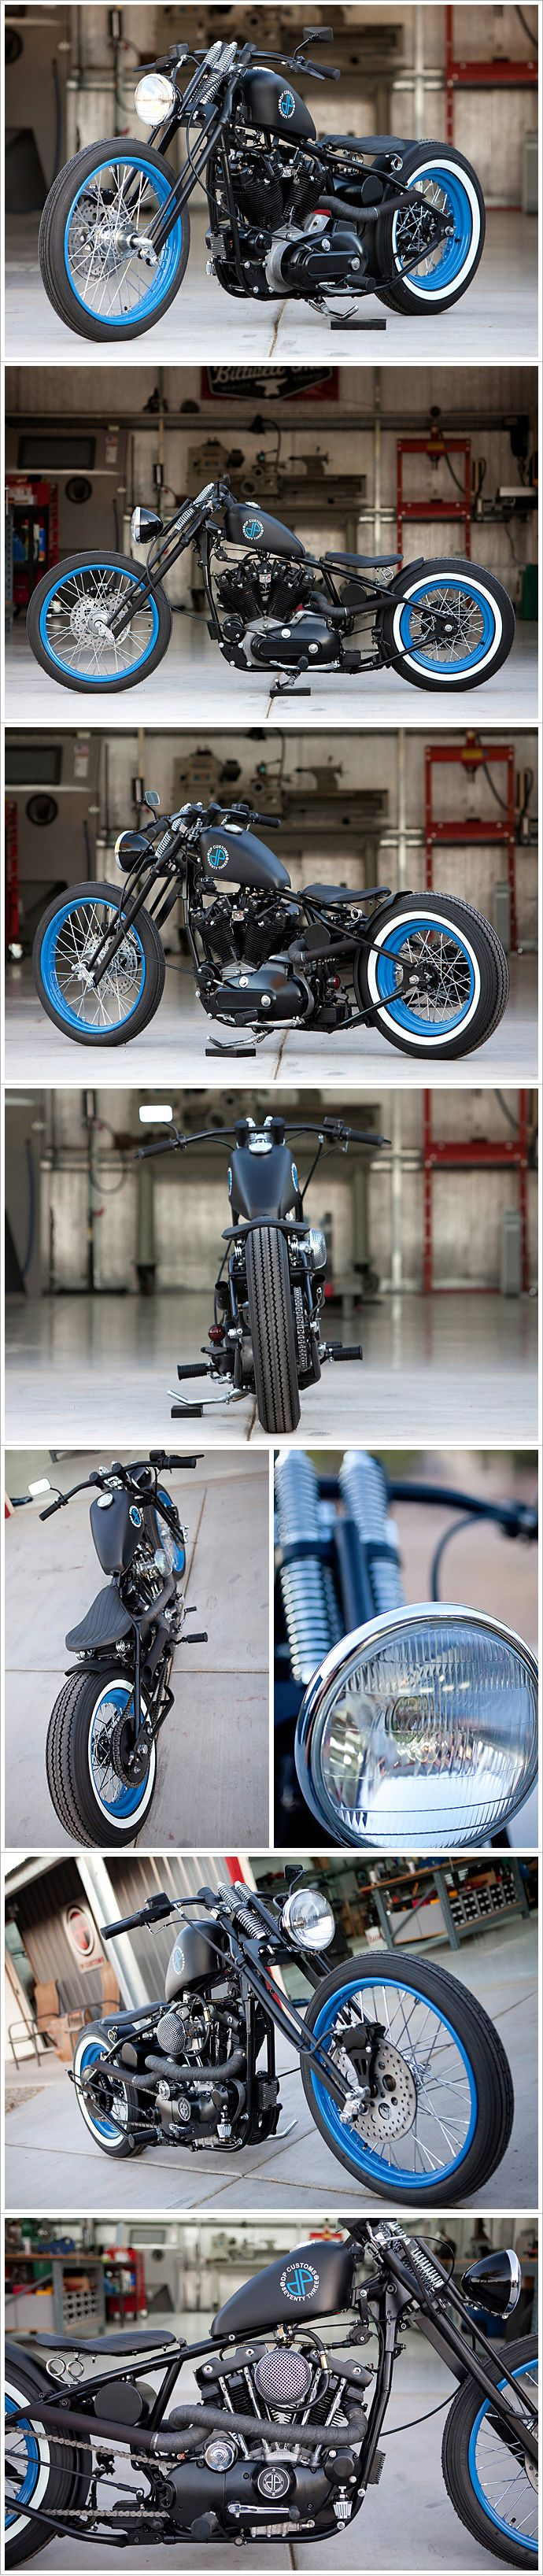 DP Customs - 'Seventy Three' Harley Ironhead.  I'm IN LOVE!!!  I would love mine to be pink, instead.